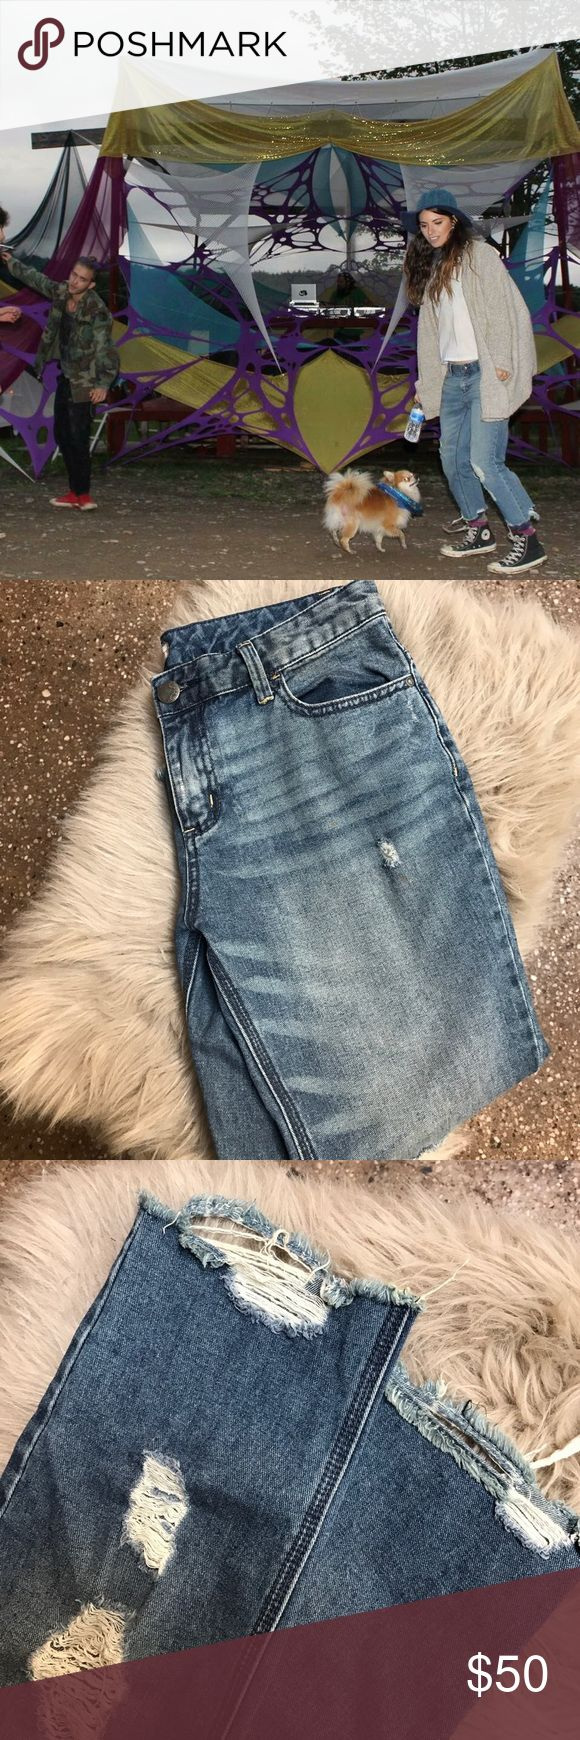 Free people Jeans Super cute vintage inspired distressed free people jeans. Low waist and ripped cropped ankle length finish Free People Jeans Ankle & Cropped